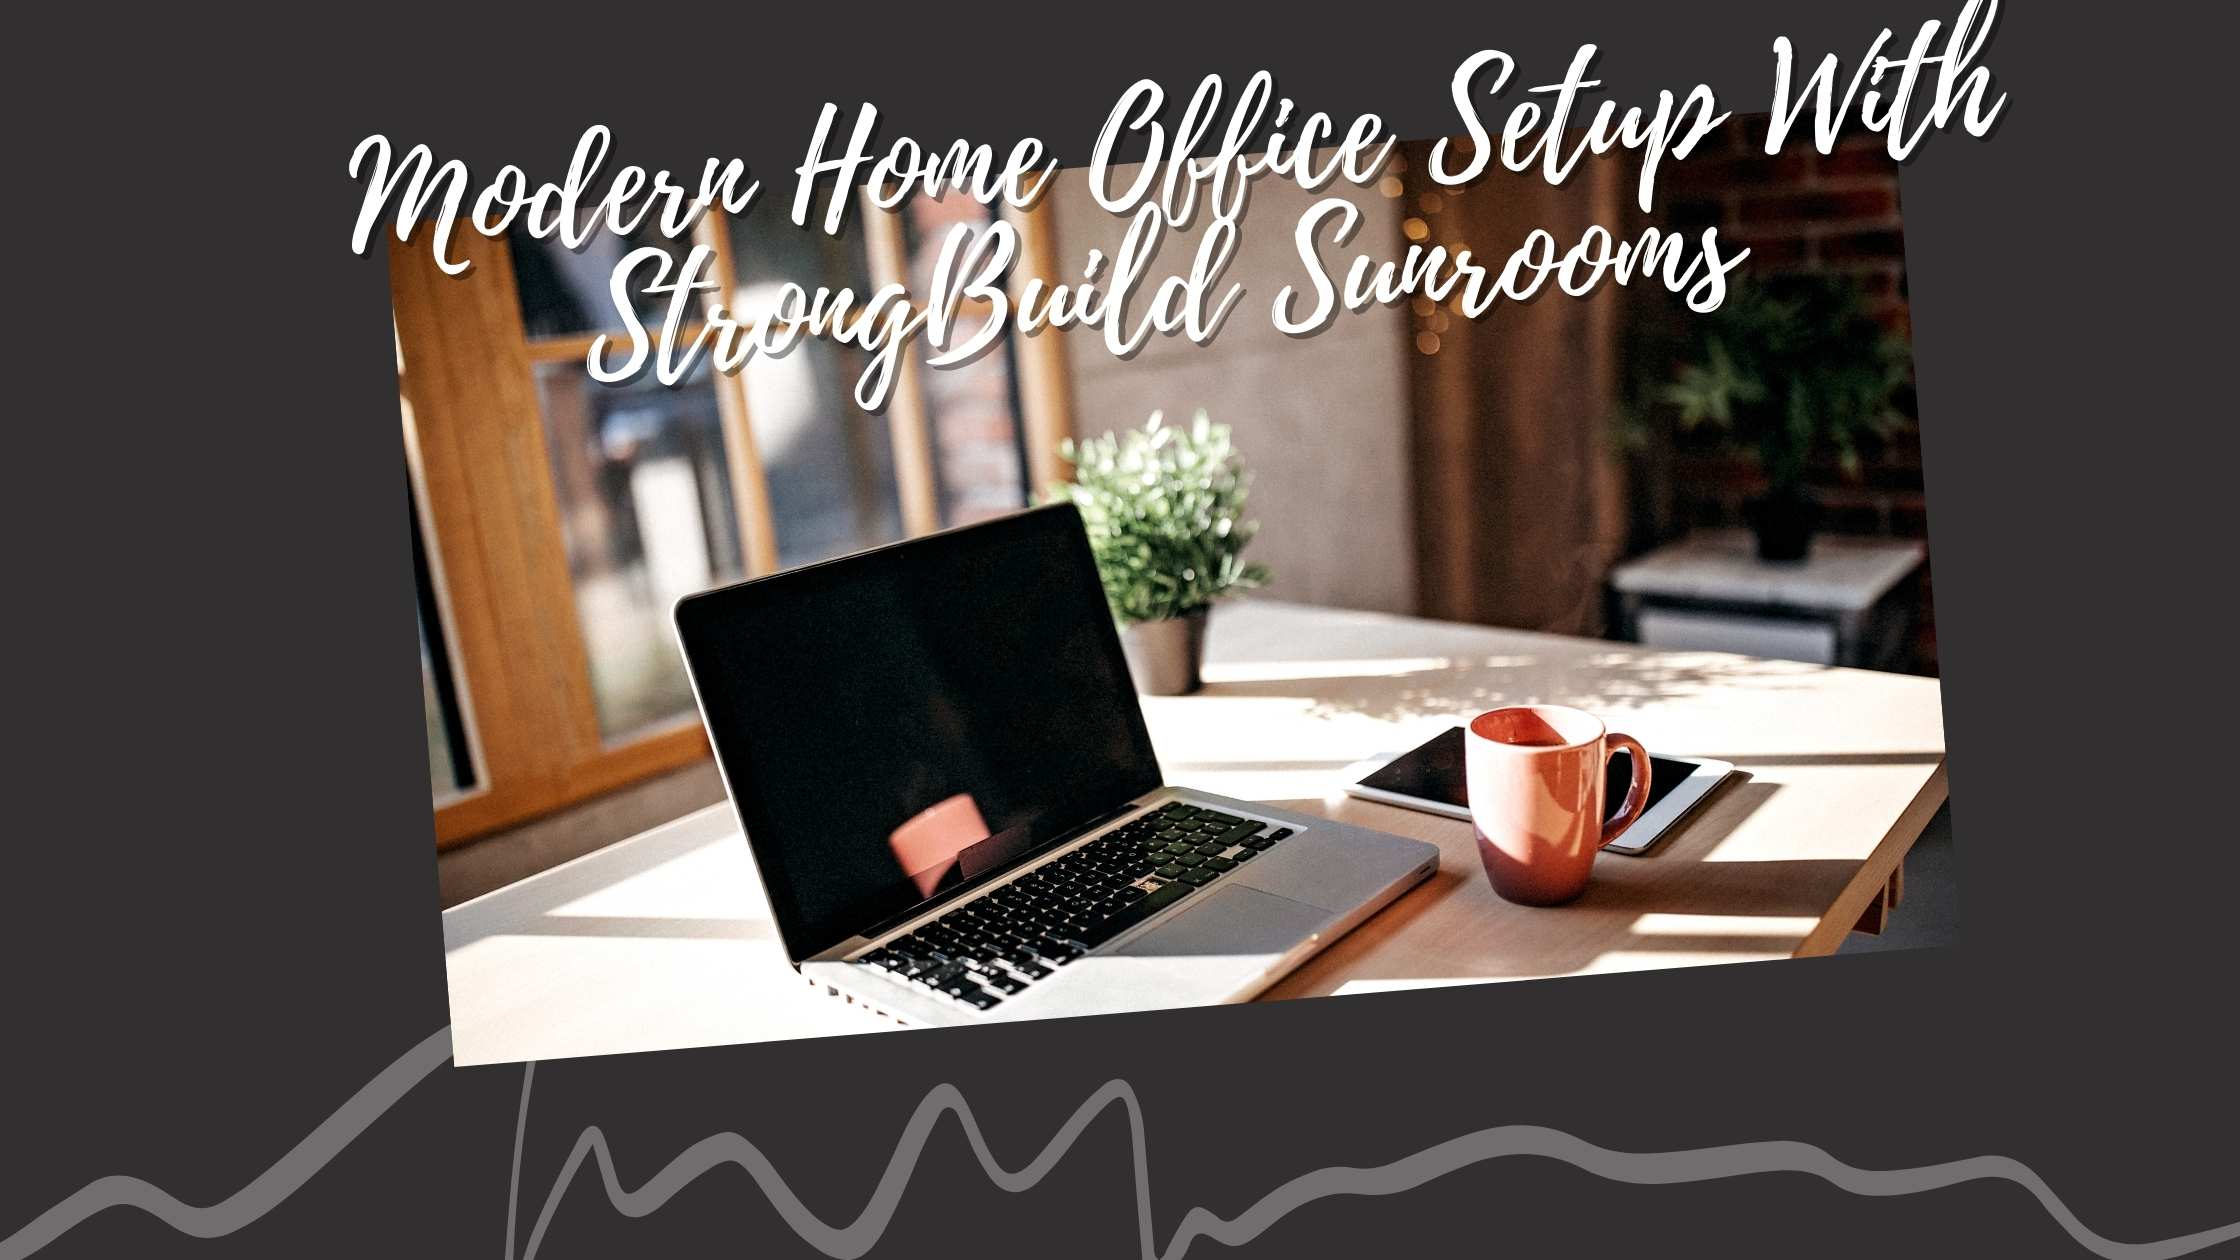 Modern Home Office Setup With StrongBuild Sunrooms